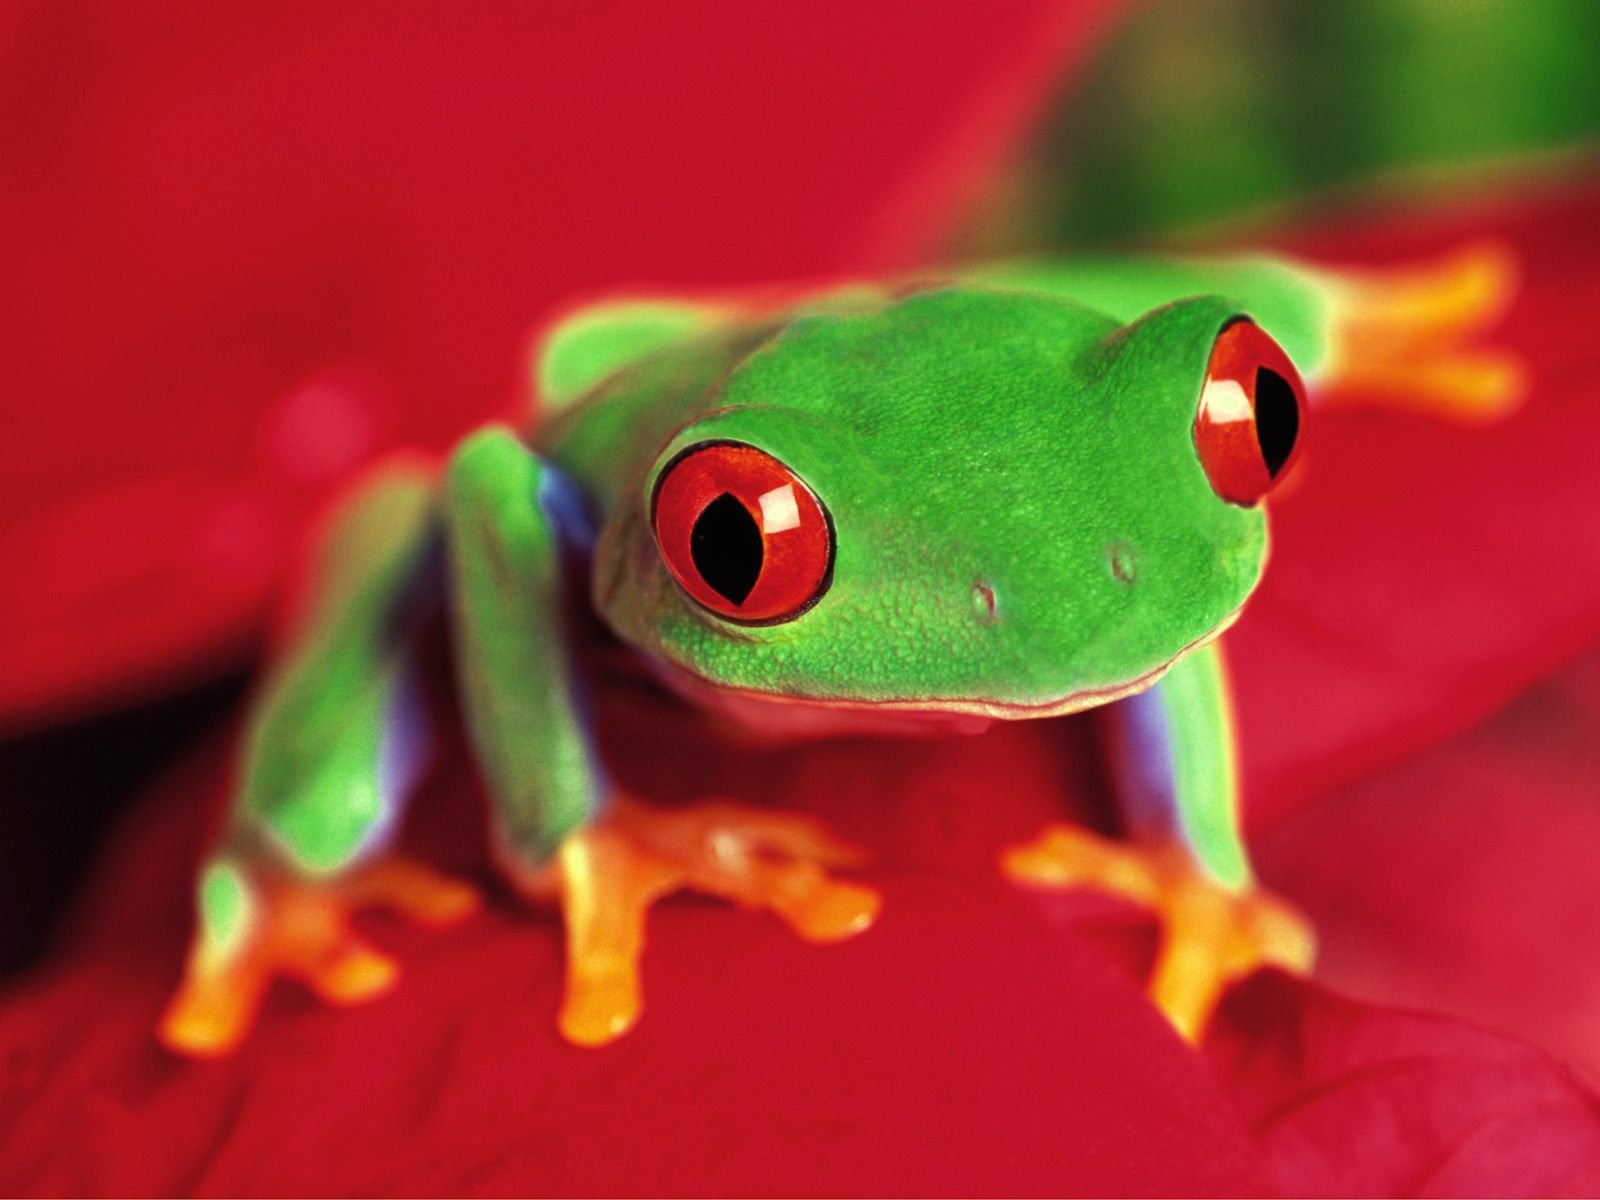 wallpaper title tree frog red eyed wallpaper category animals your 494